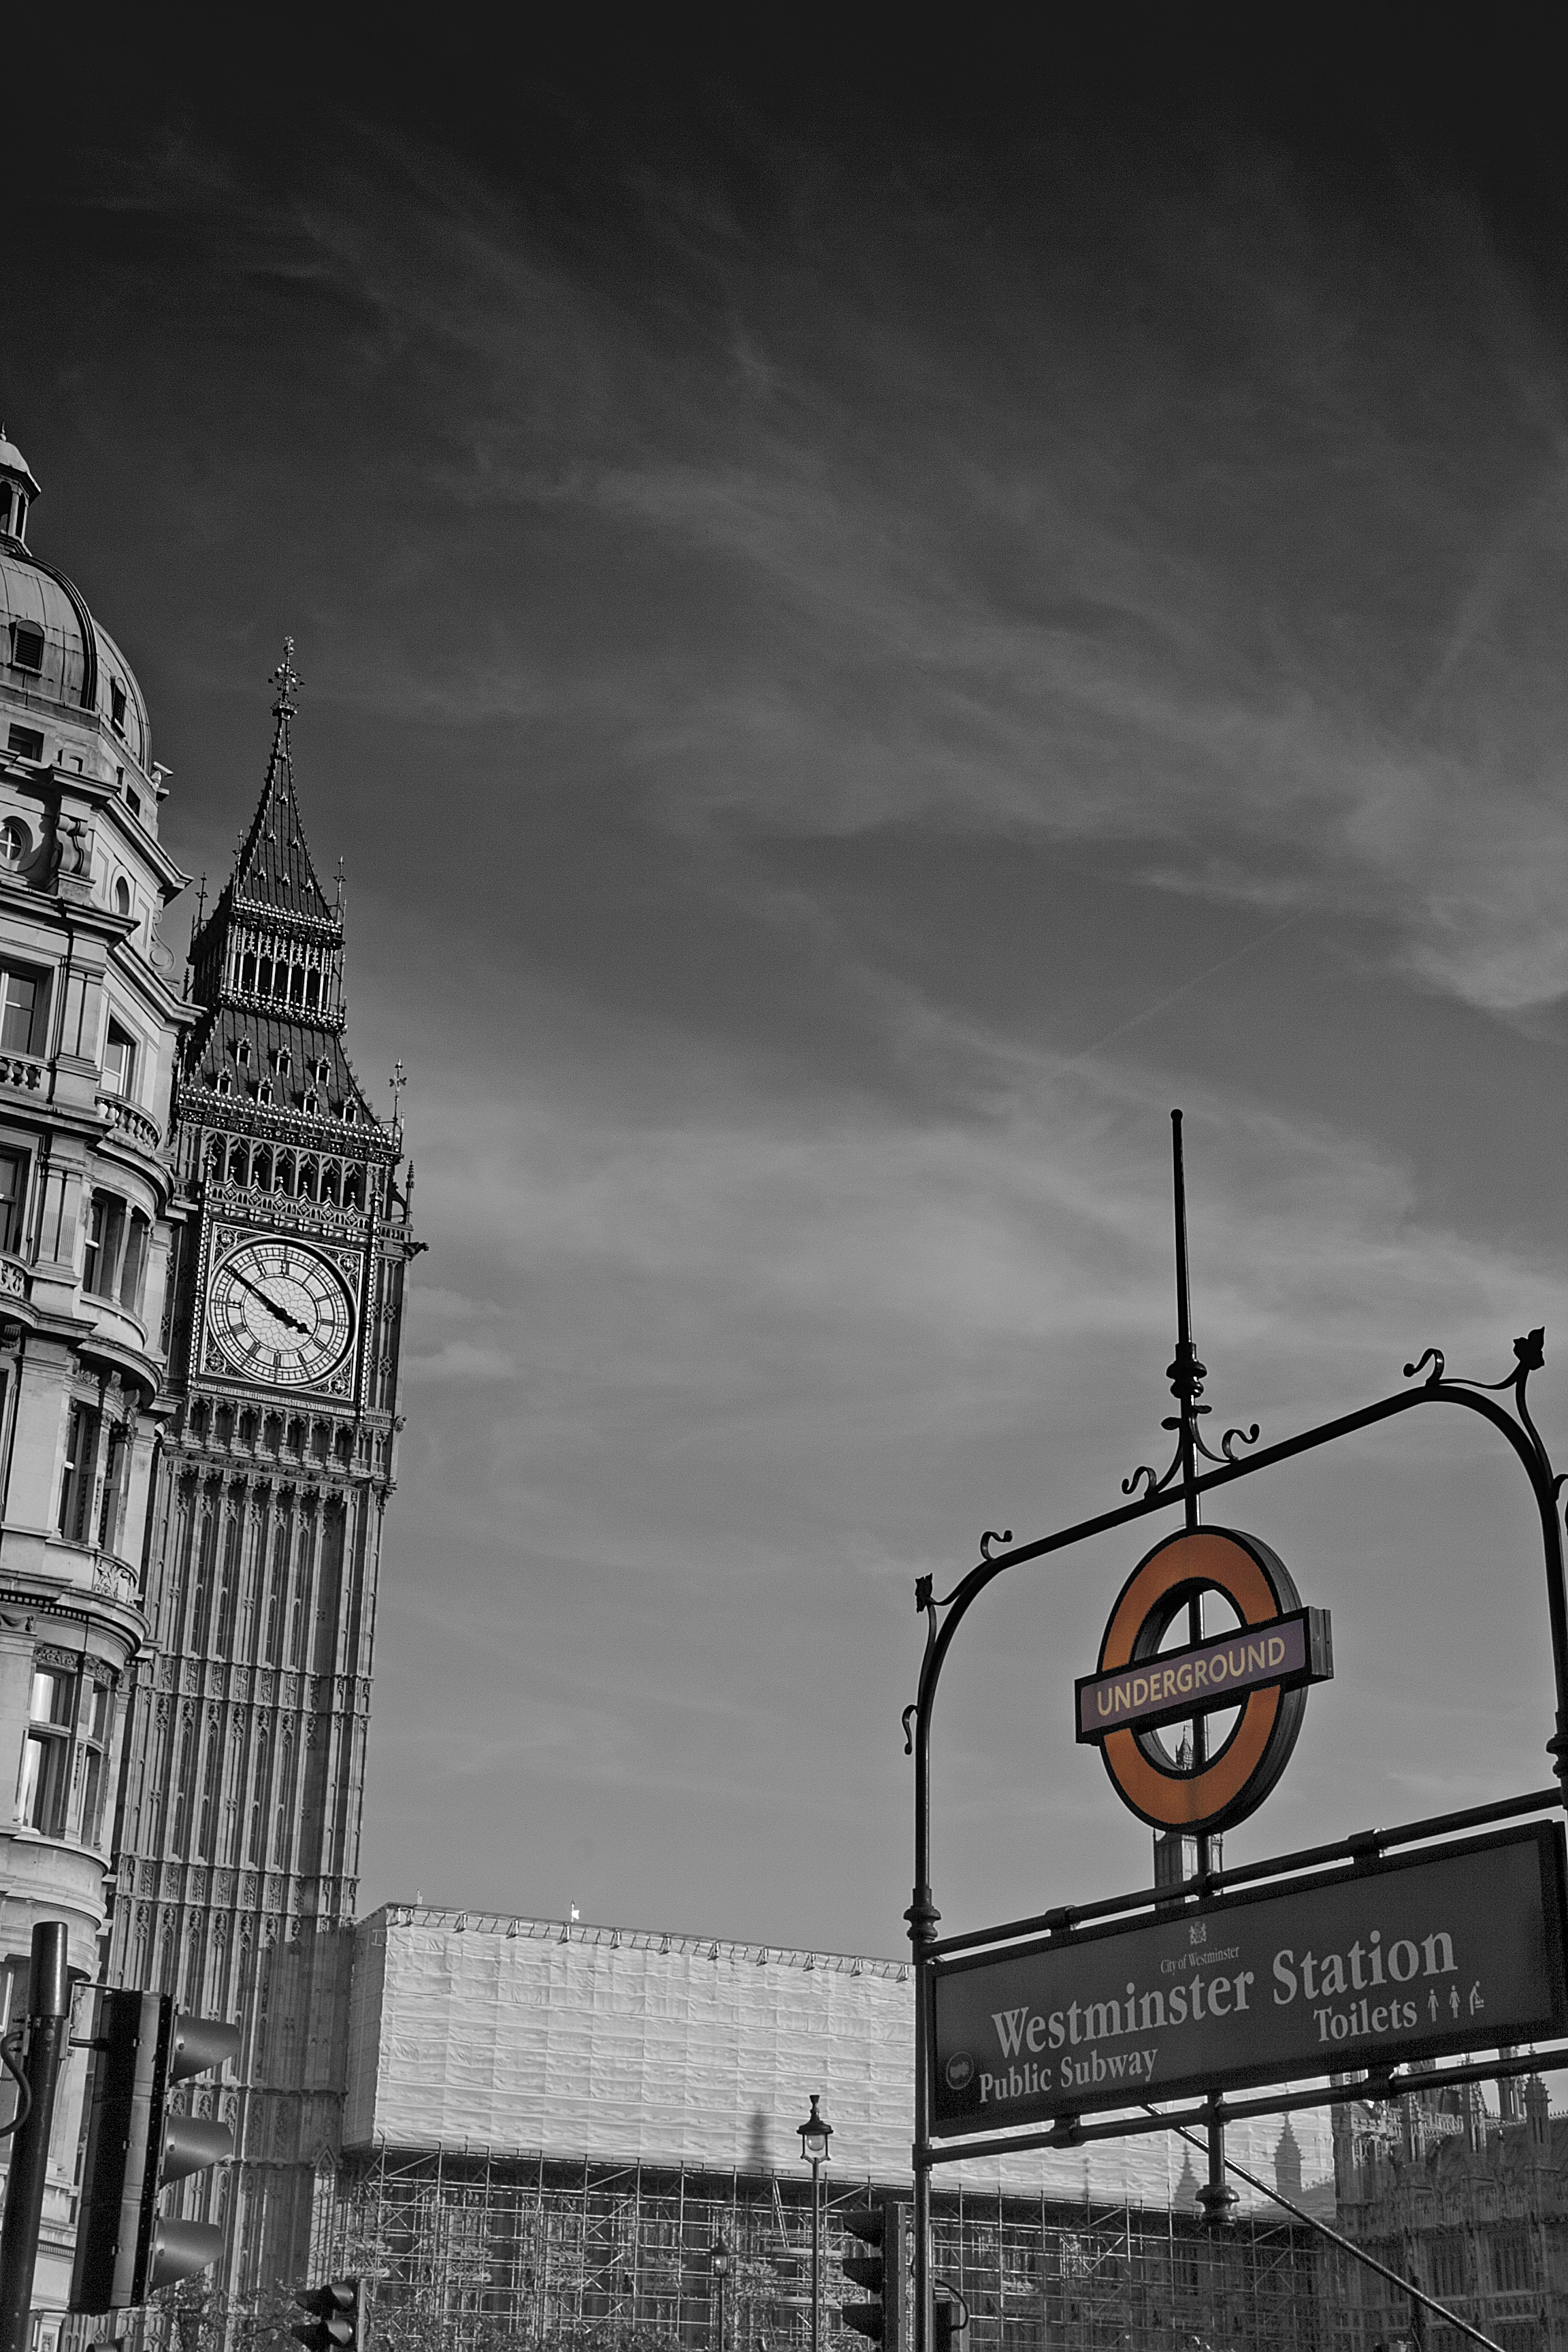 Westminster Underground station and the Big Ben